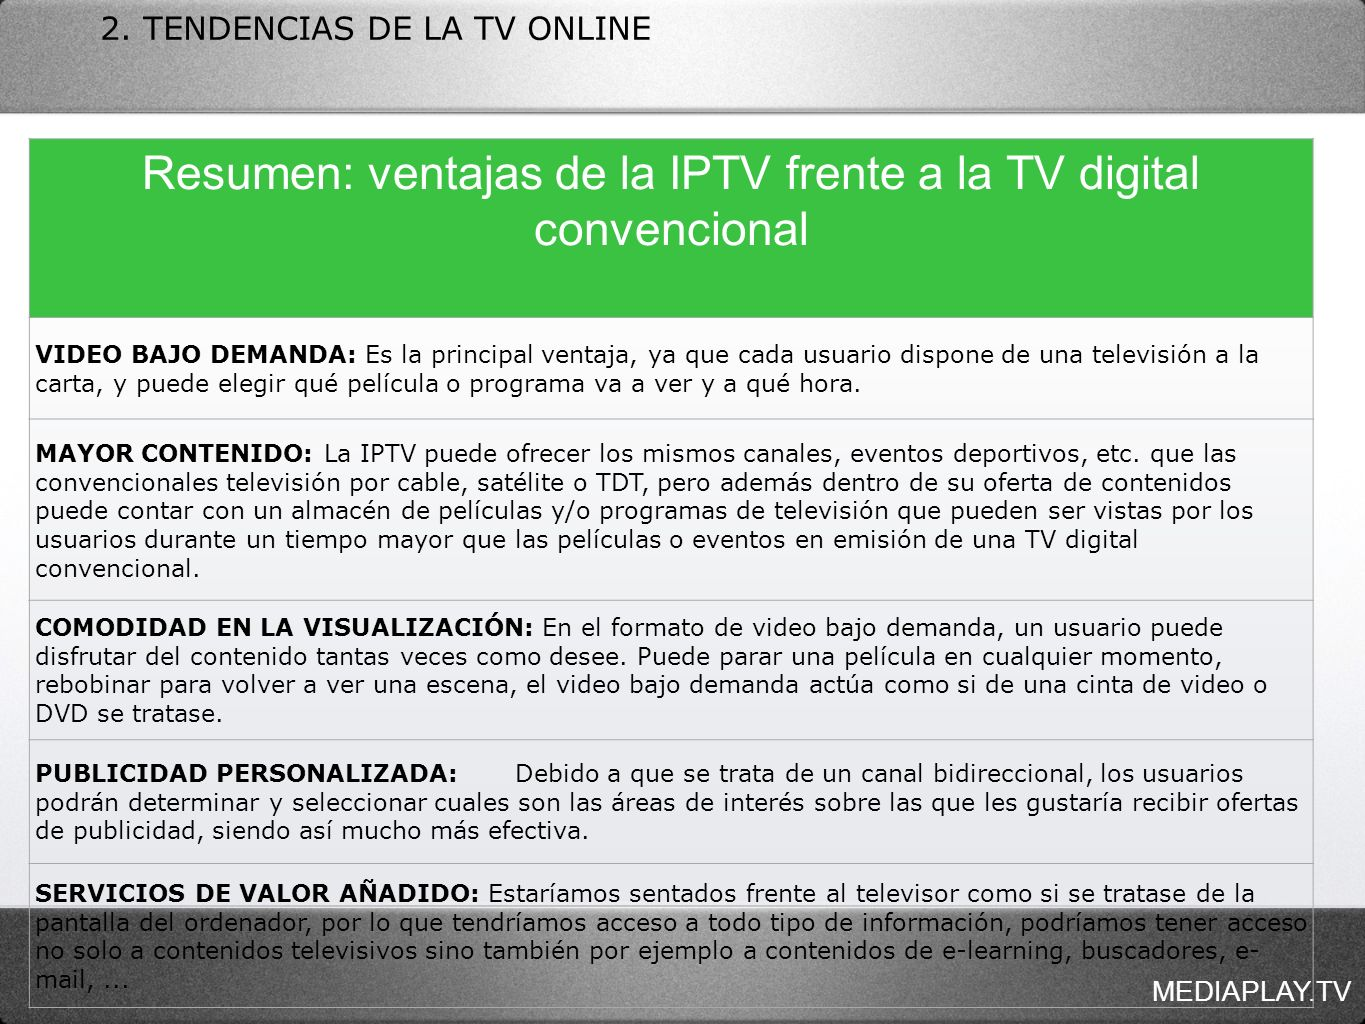 MEDIAPLAY.TV 2. TENDENCIAS DE LA TV ONLINE Resumen: ventajas de la IPTV frente a la TV digital convencional VIDEO BAJO DEMANDA: Es la principal ventaj